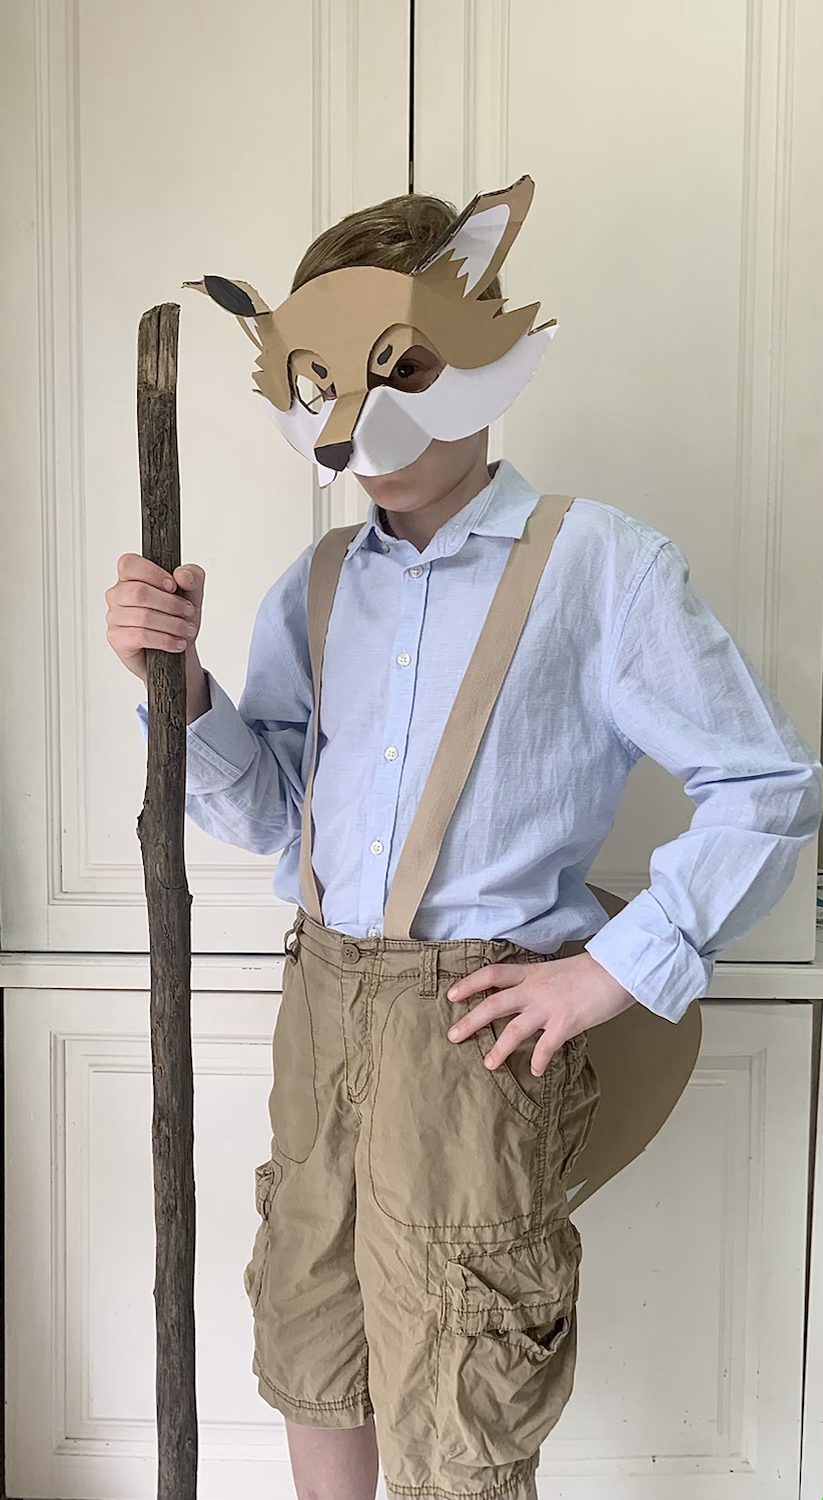 Clever Mr Fox costume made from cardboard